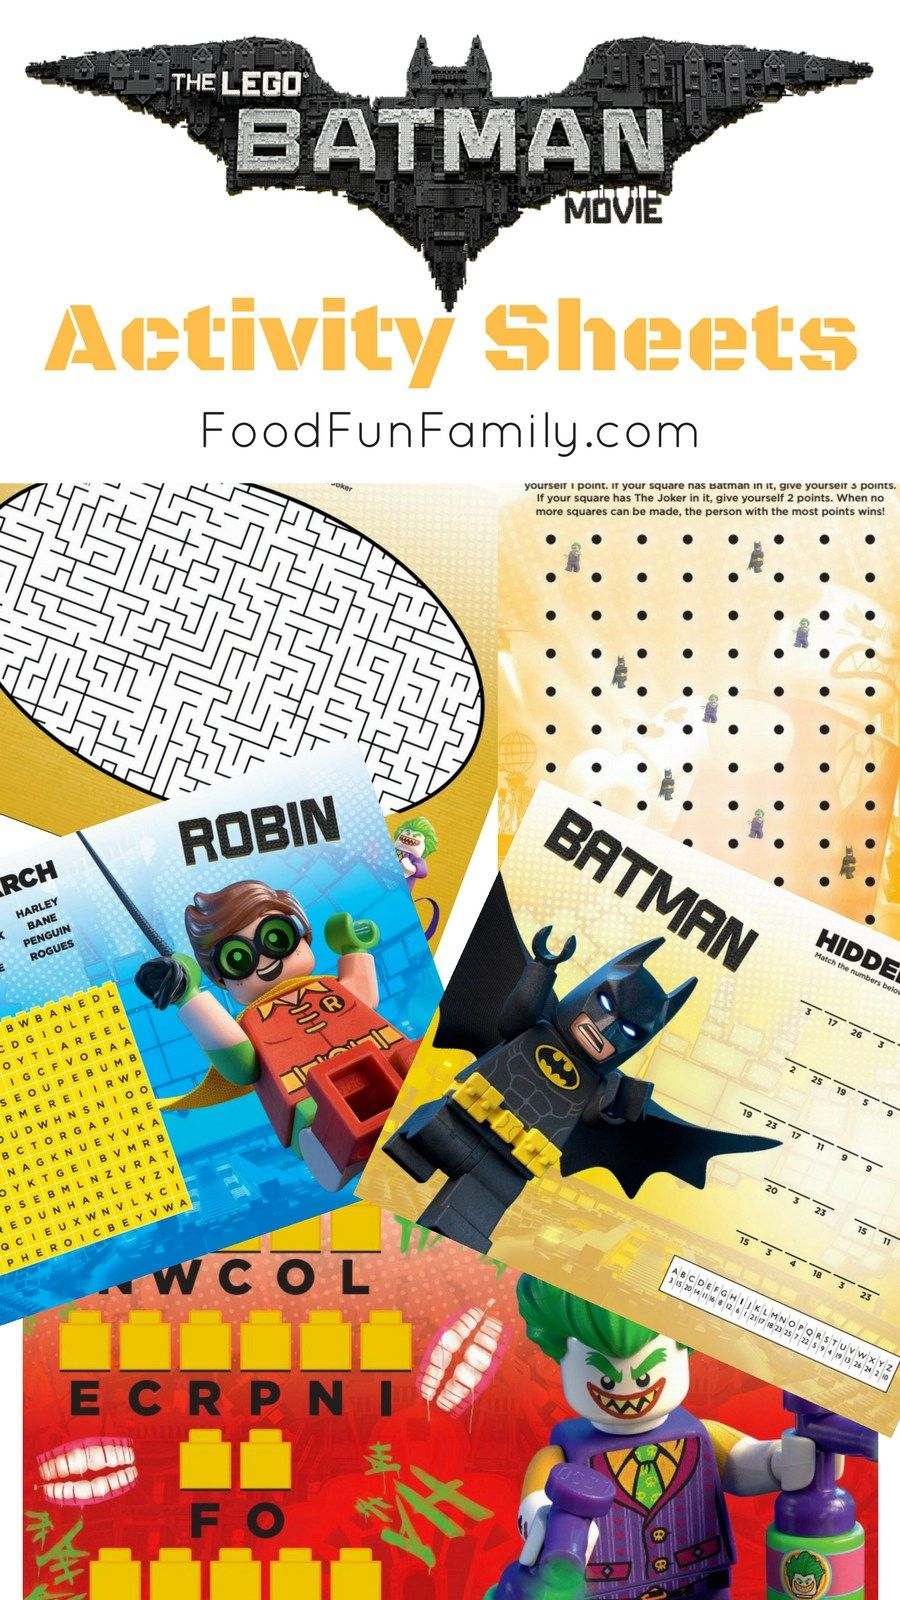 Lego Batman Movie Free Printable Activity Sheets | Lego Dc | Pinterest - Free Printable Lego Batman